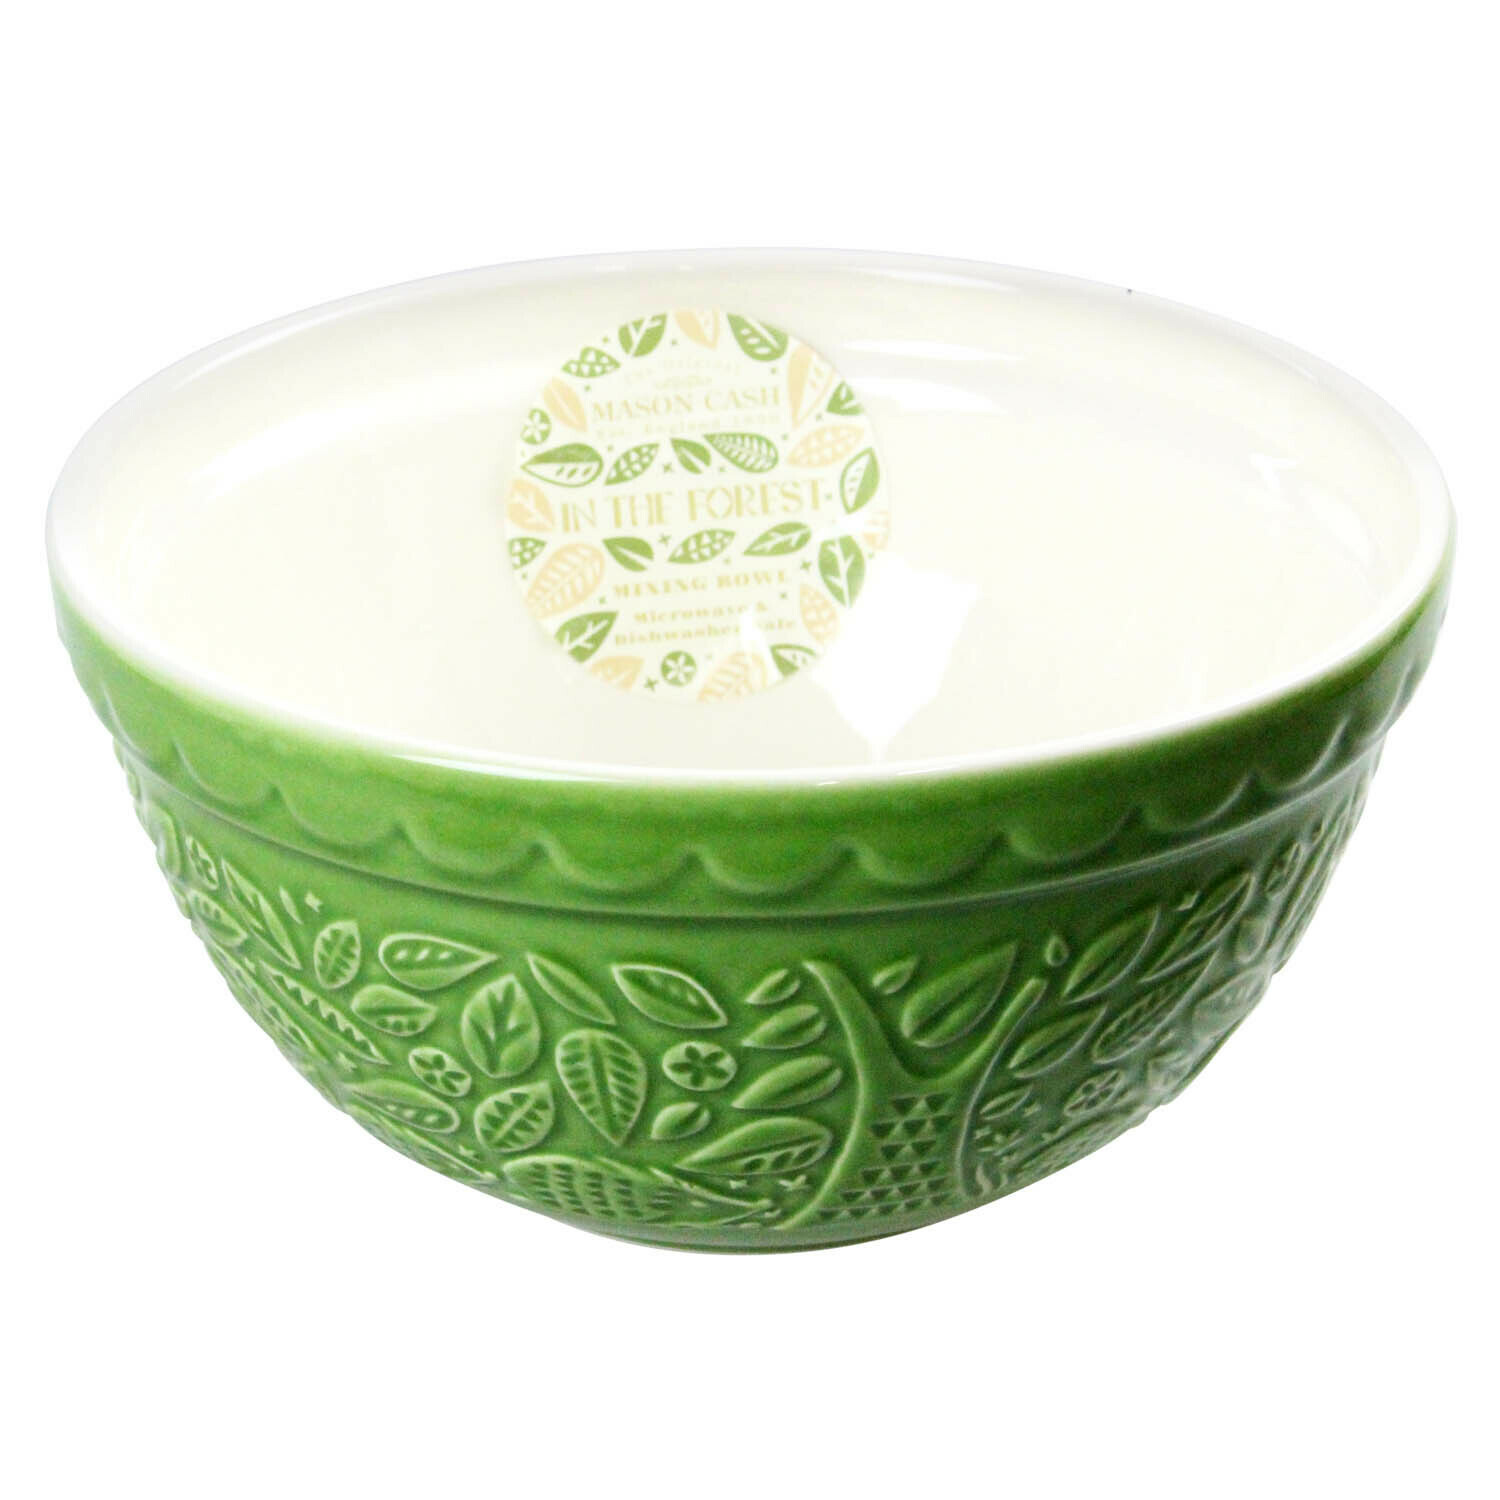 MASON CASH- In The Forest HedgehogGreen Mixing Bowl-21cm/1.1L